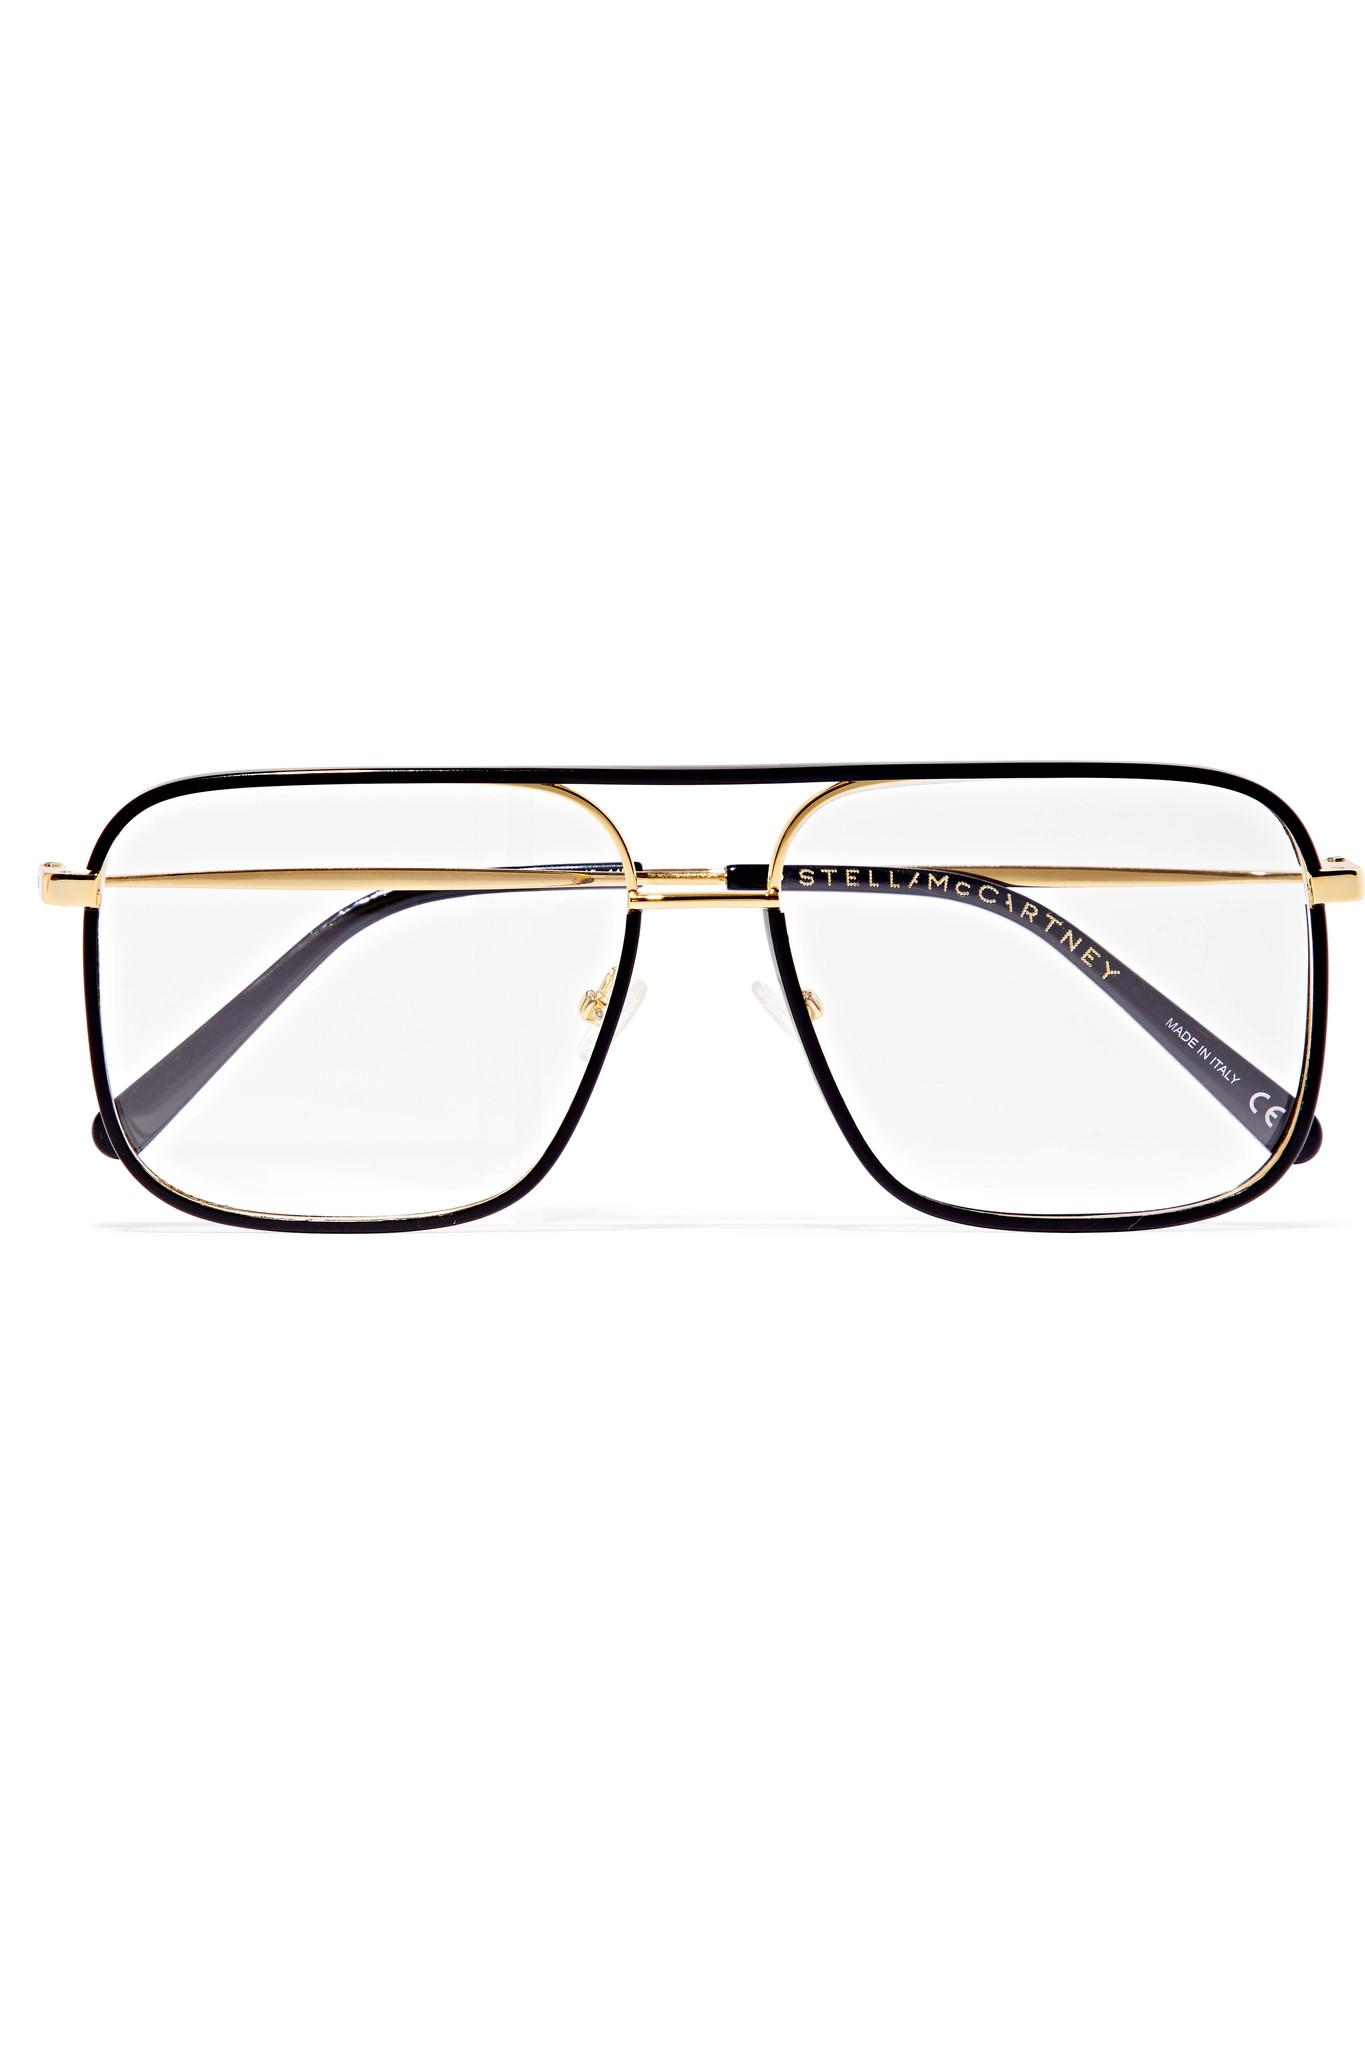 fb42a72cda55 Lyst - Stella McCartney D-frame Acetate And Gold-tone Optical ...